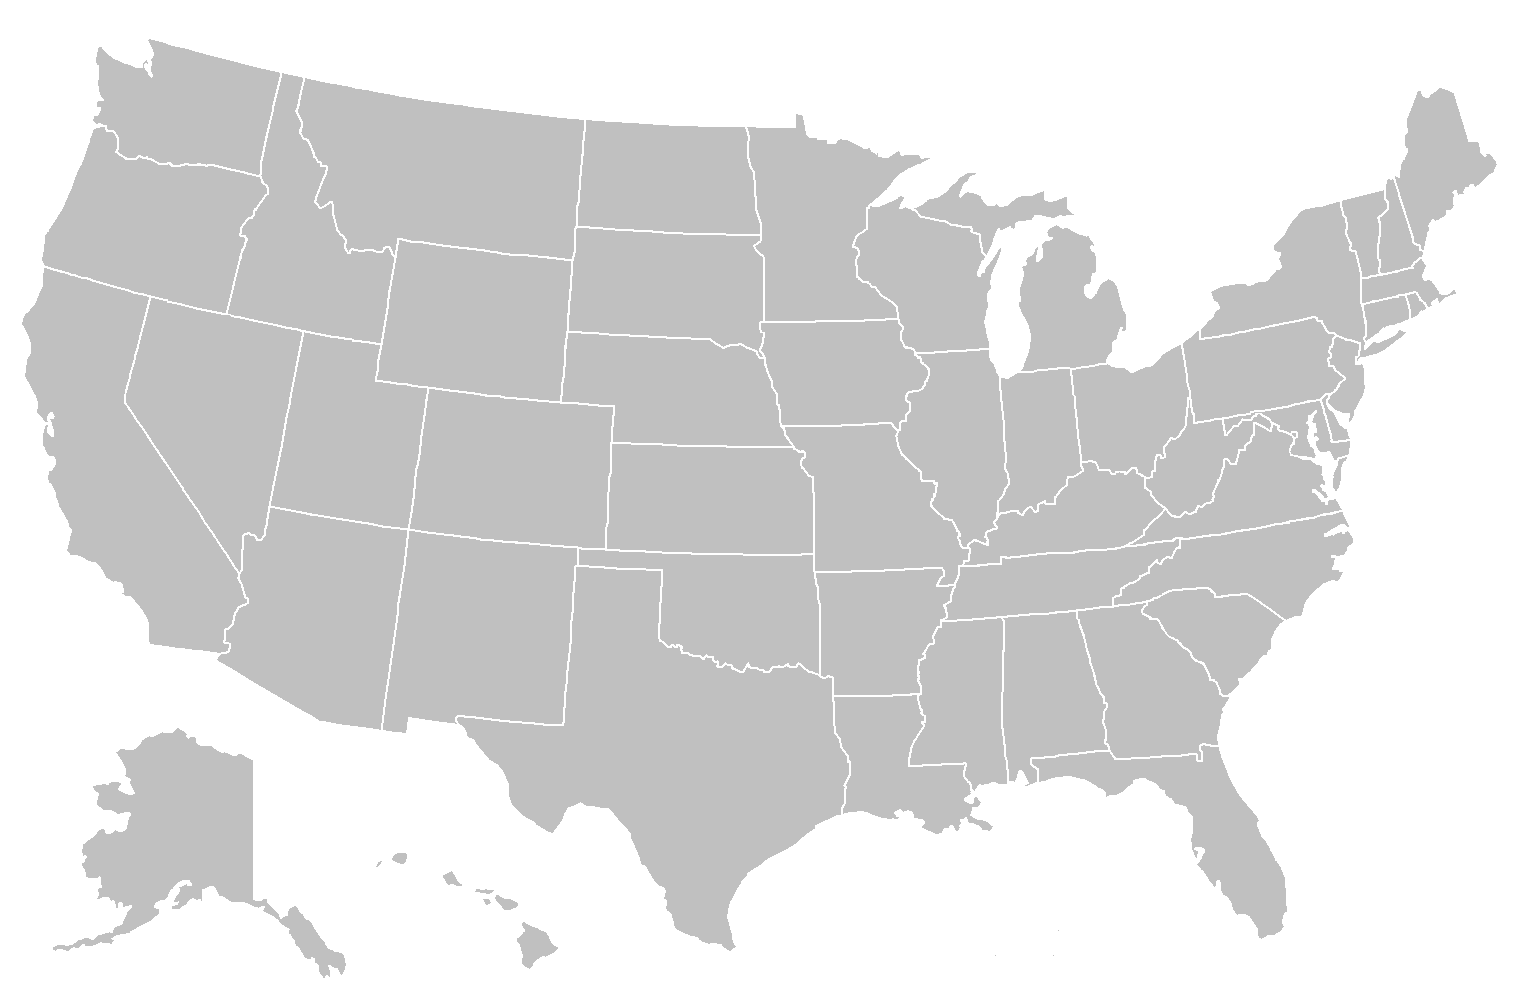 FileBlankMapUSAstatesPNG Wikimedia Commons - Blank map of the united states wikipedia